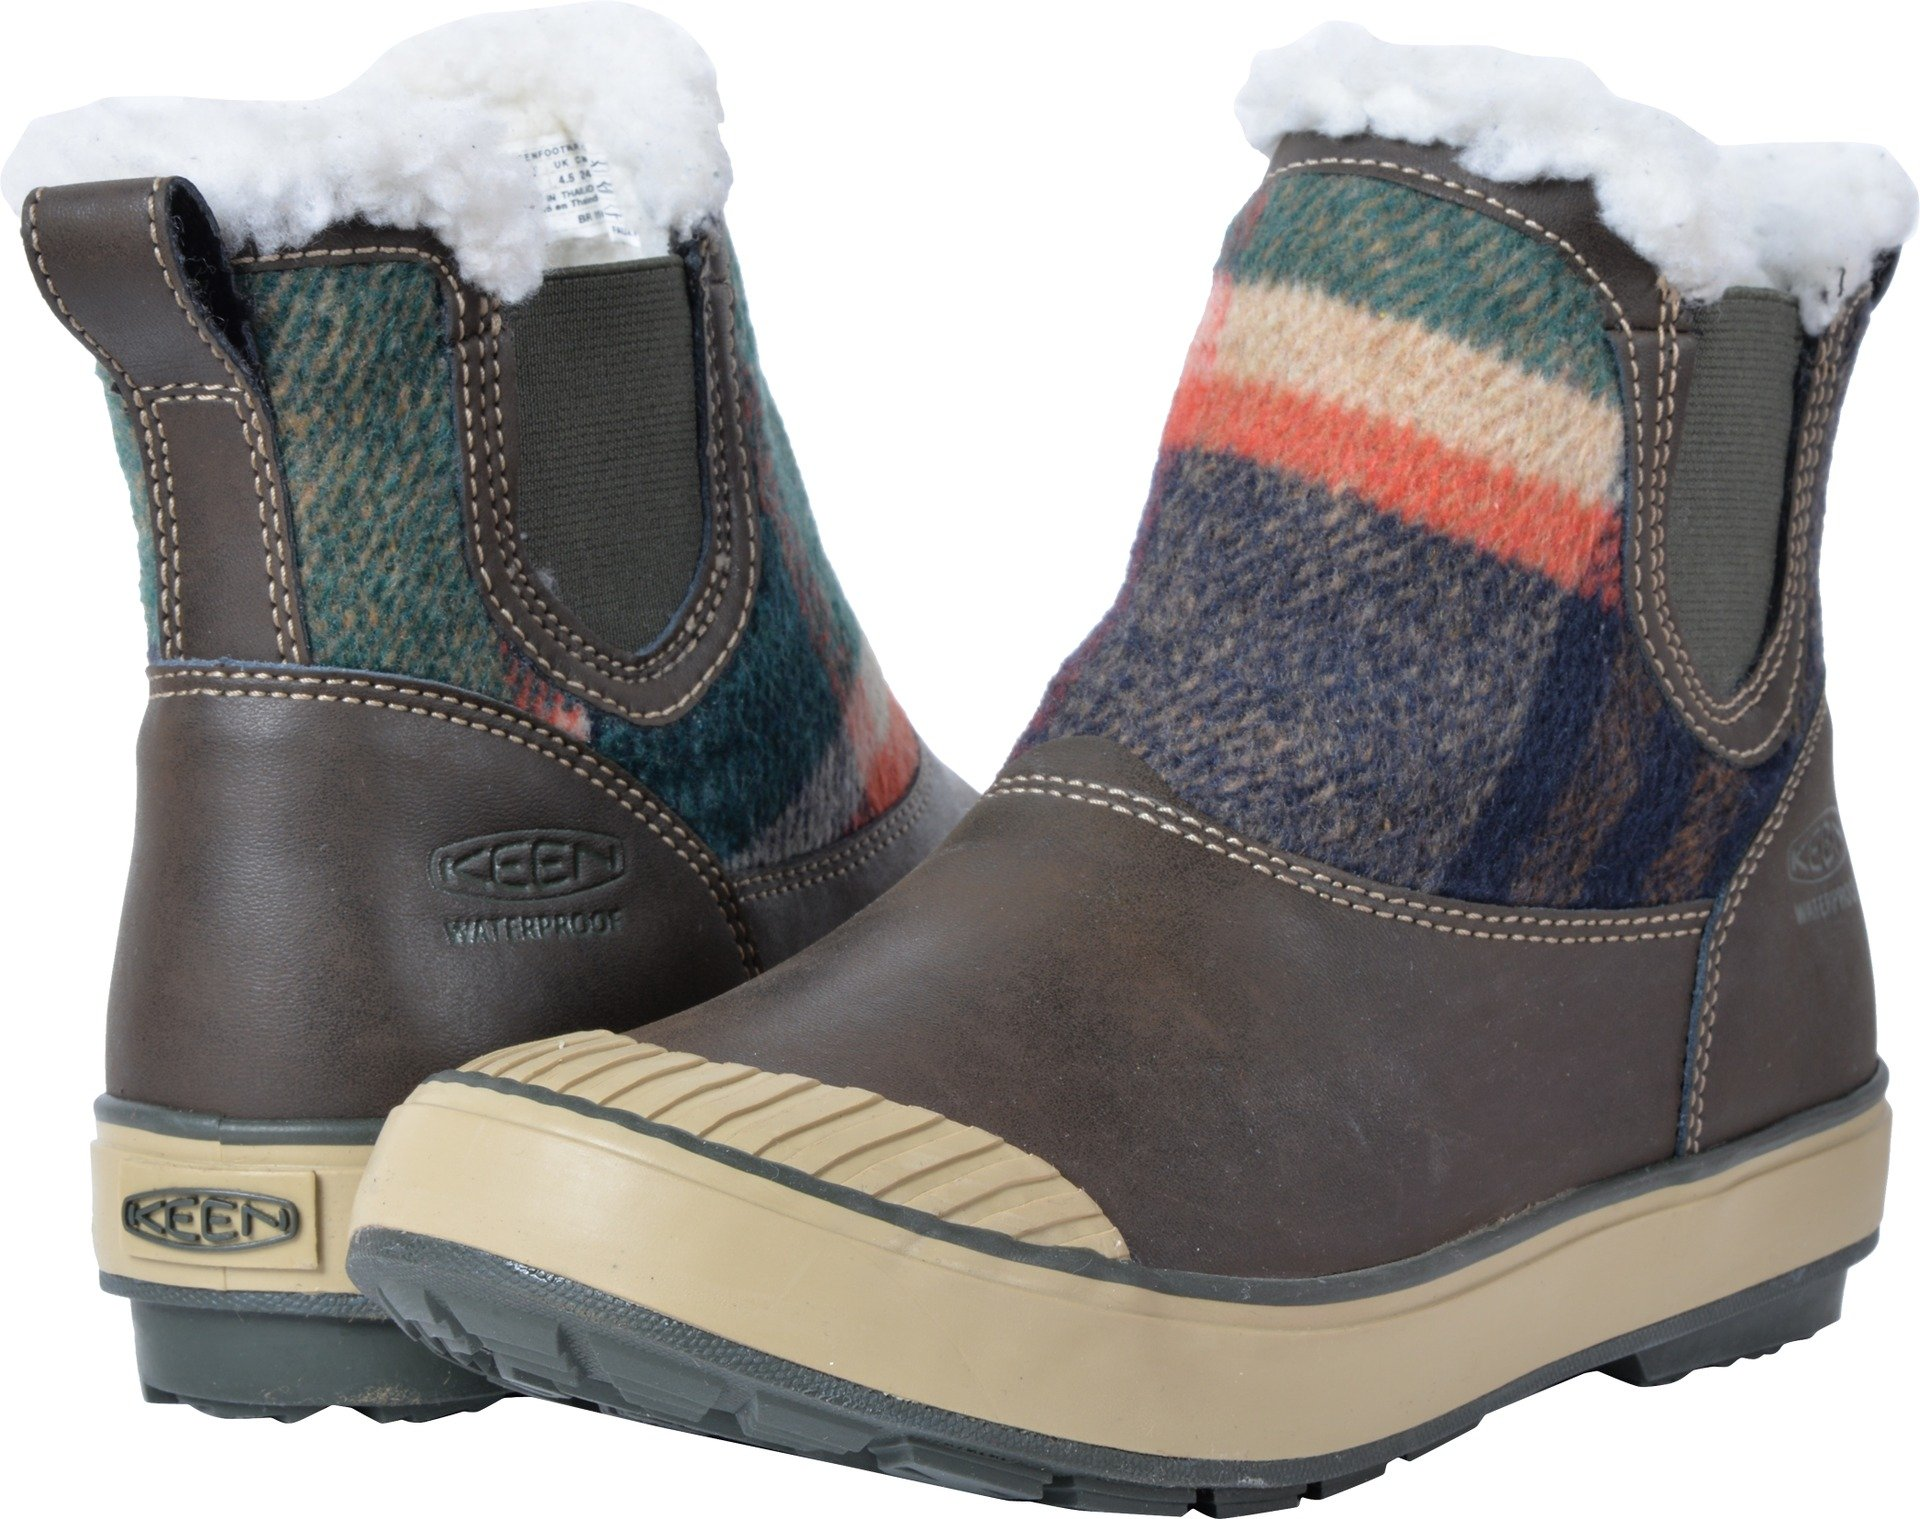 KEEN Women's Elsa Chelsea WP-w Snow Boot, Coffee Bean Wool, 9 M US